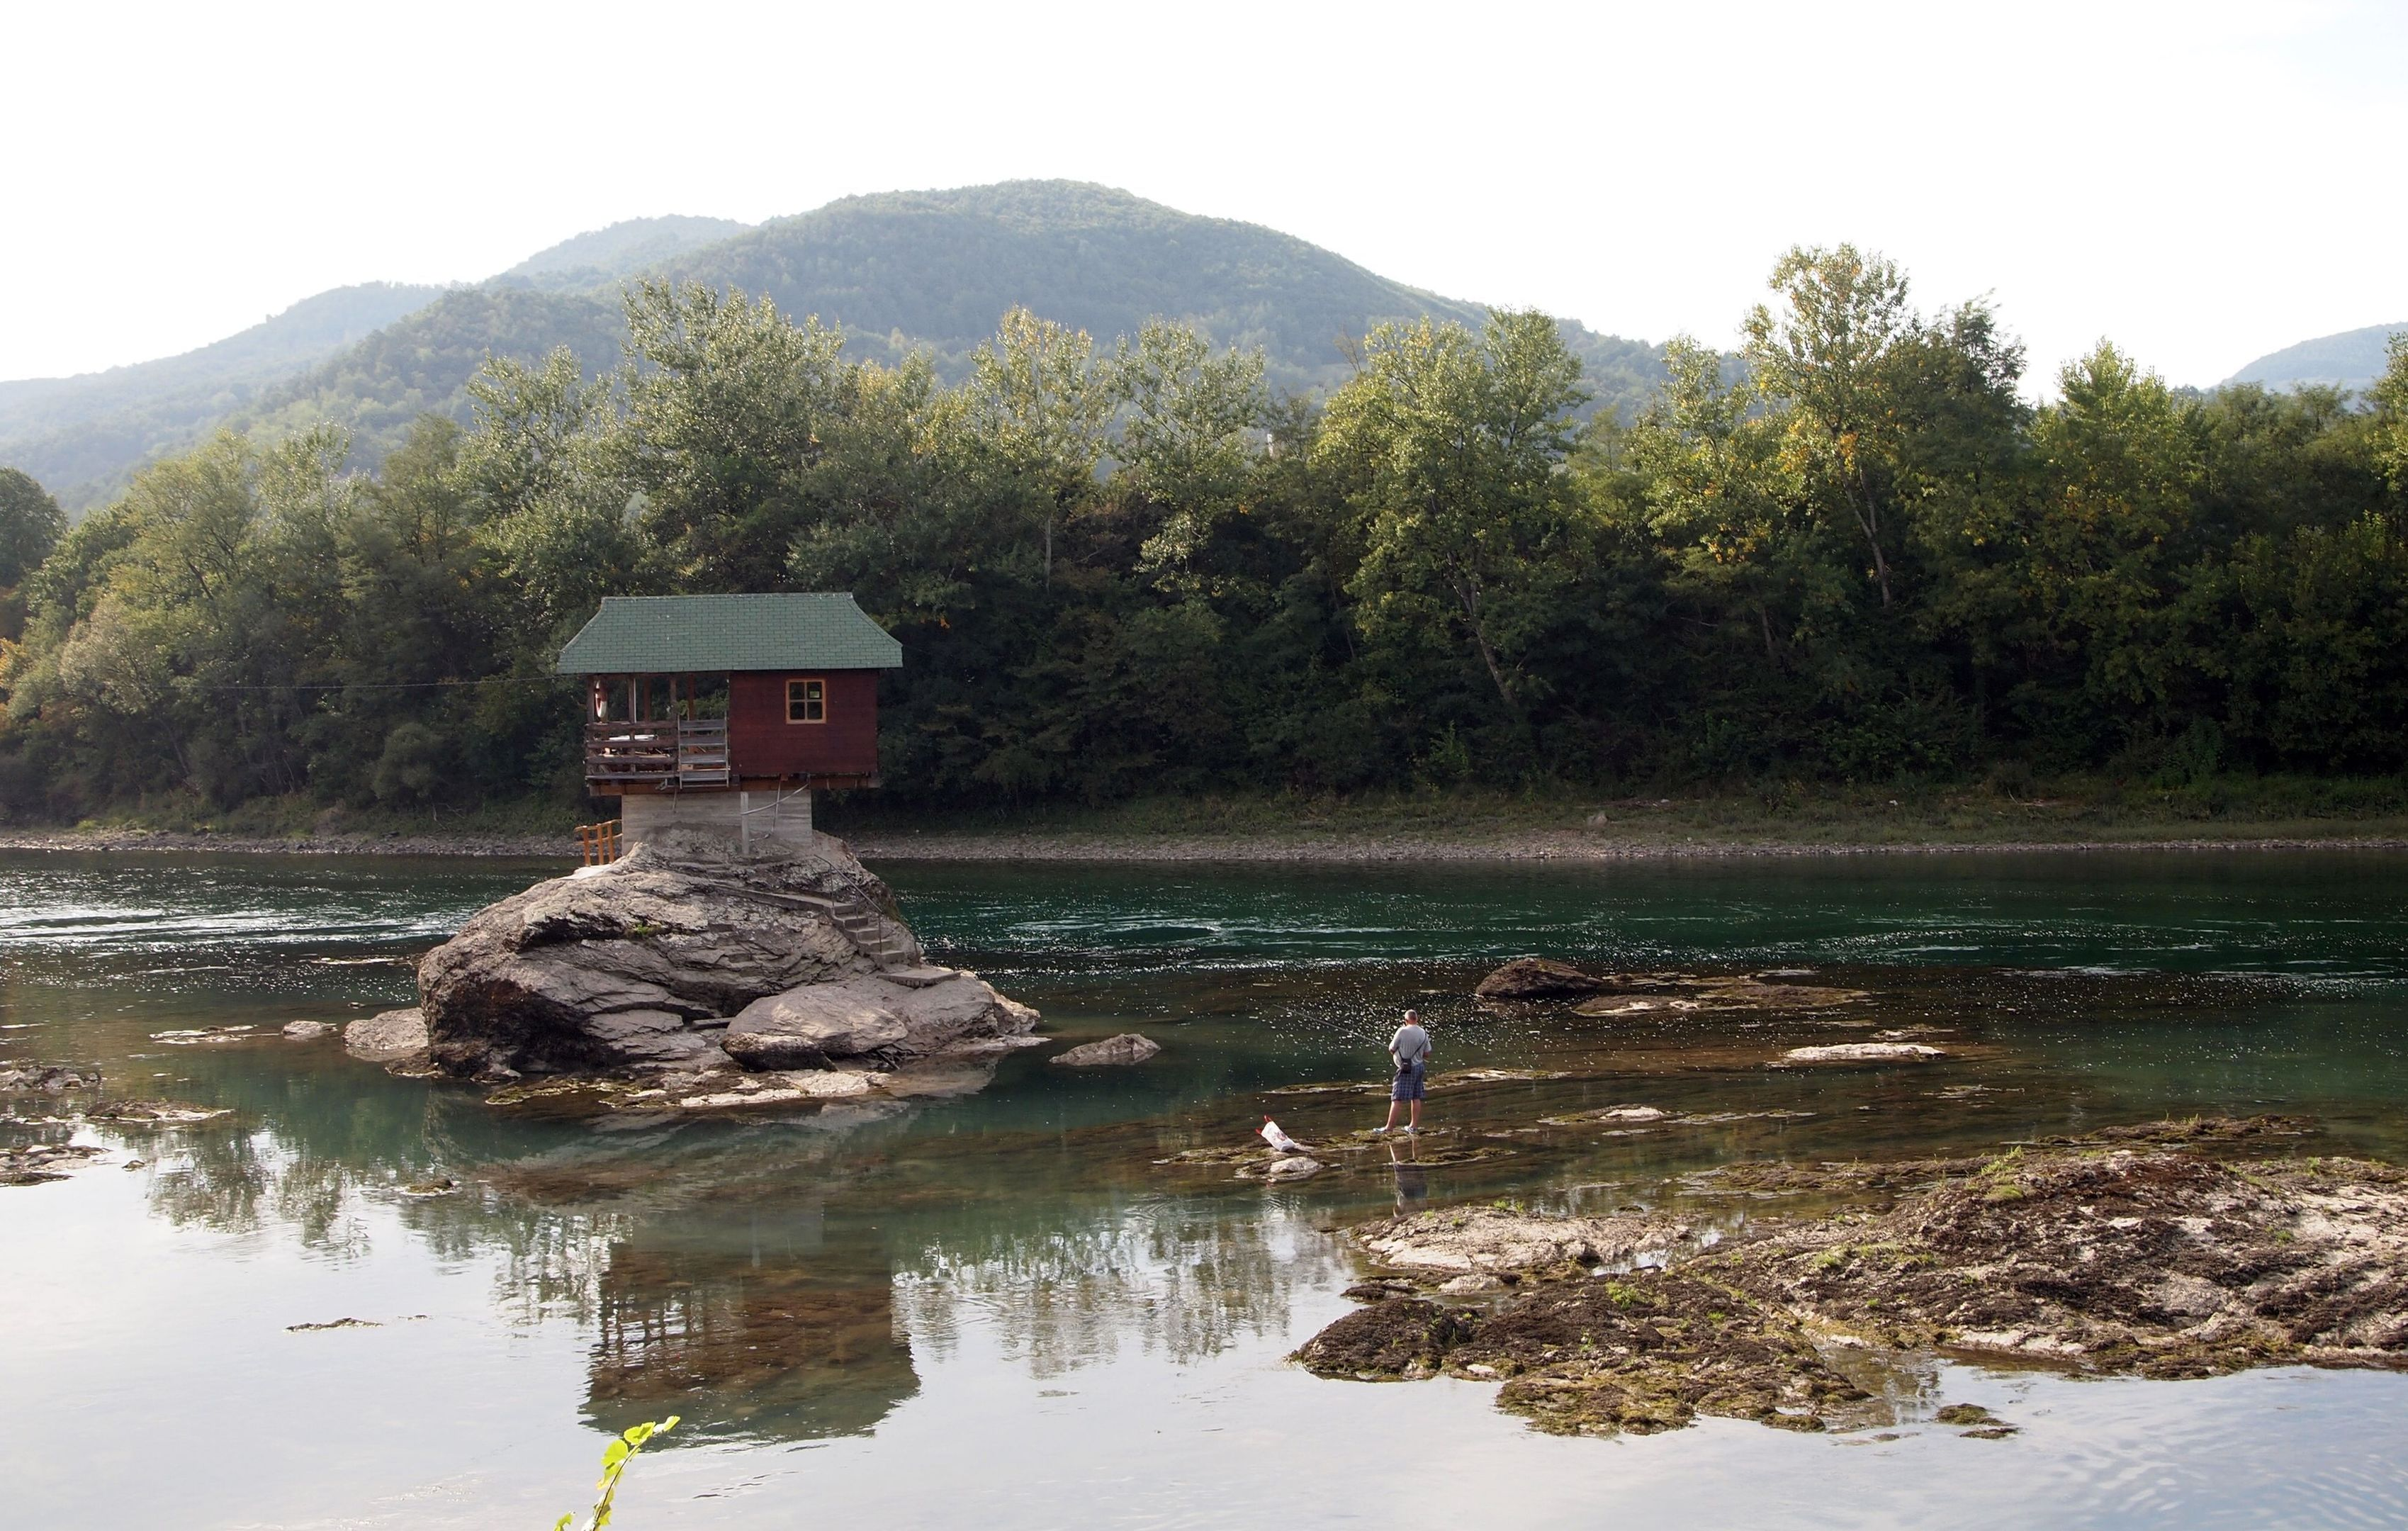 A house on stilts on the River Drina in Serbia.